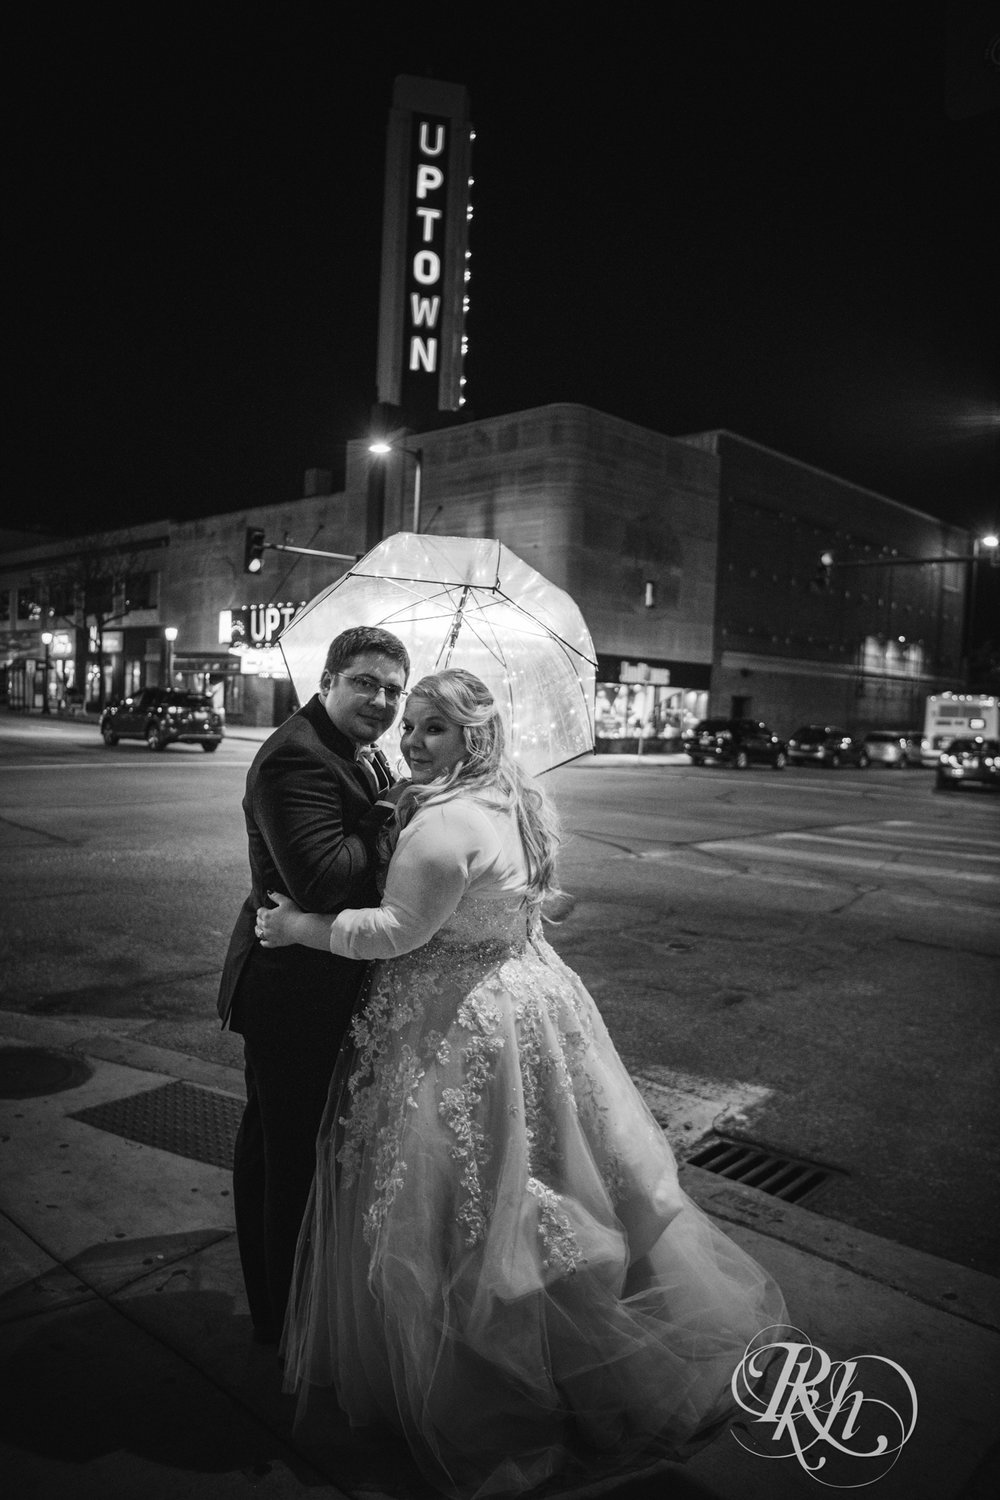 Cameron & Jesse - Minnesota Wedding Photography - Mansion at Uptown - RKH Images - Blog (55 of 65).jpg